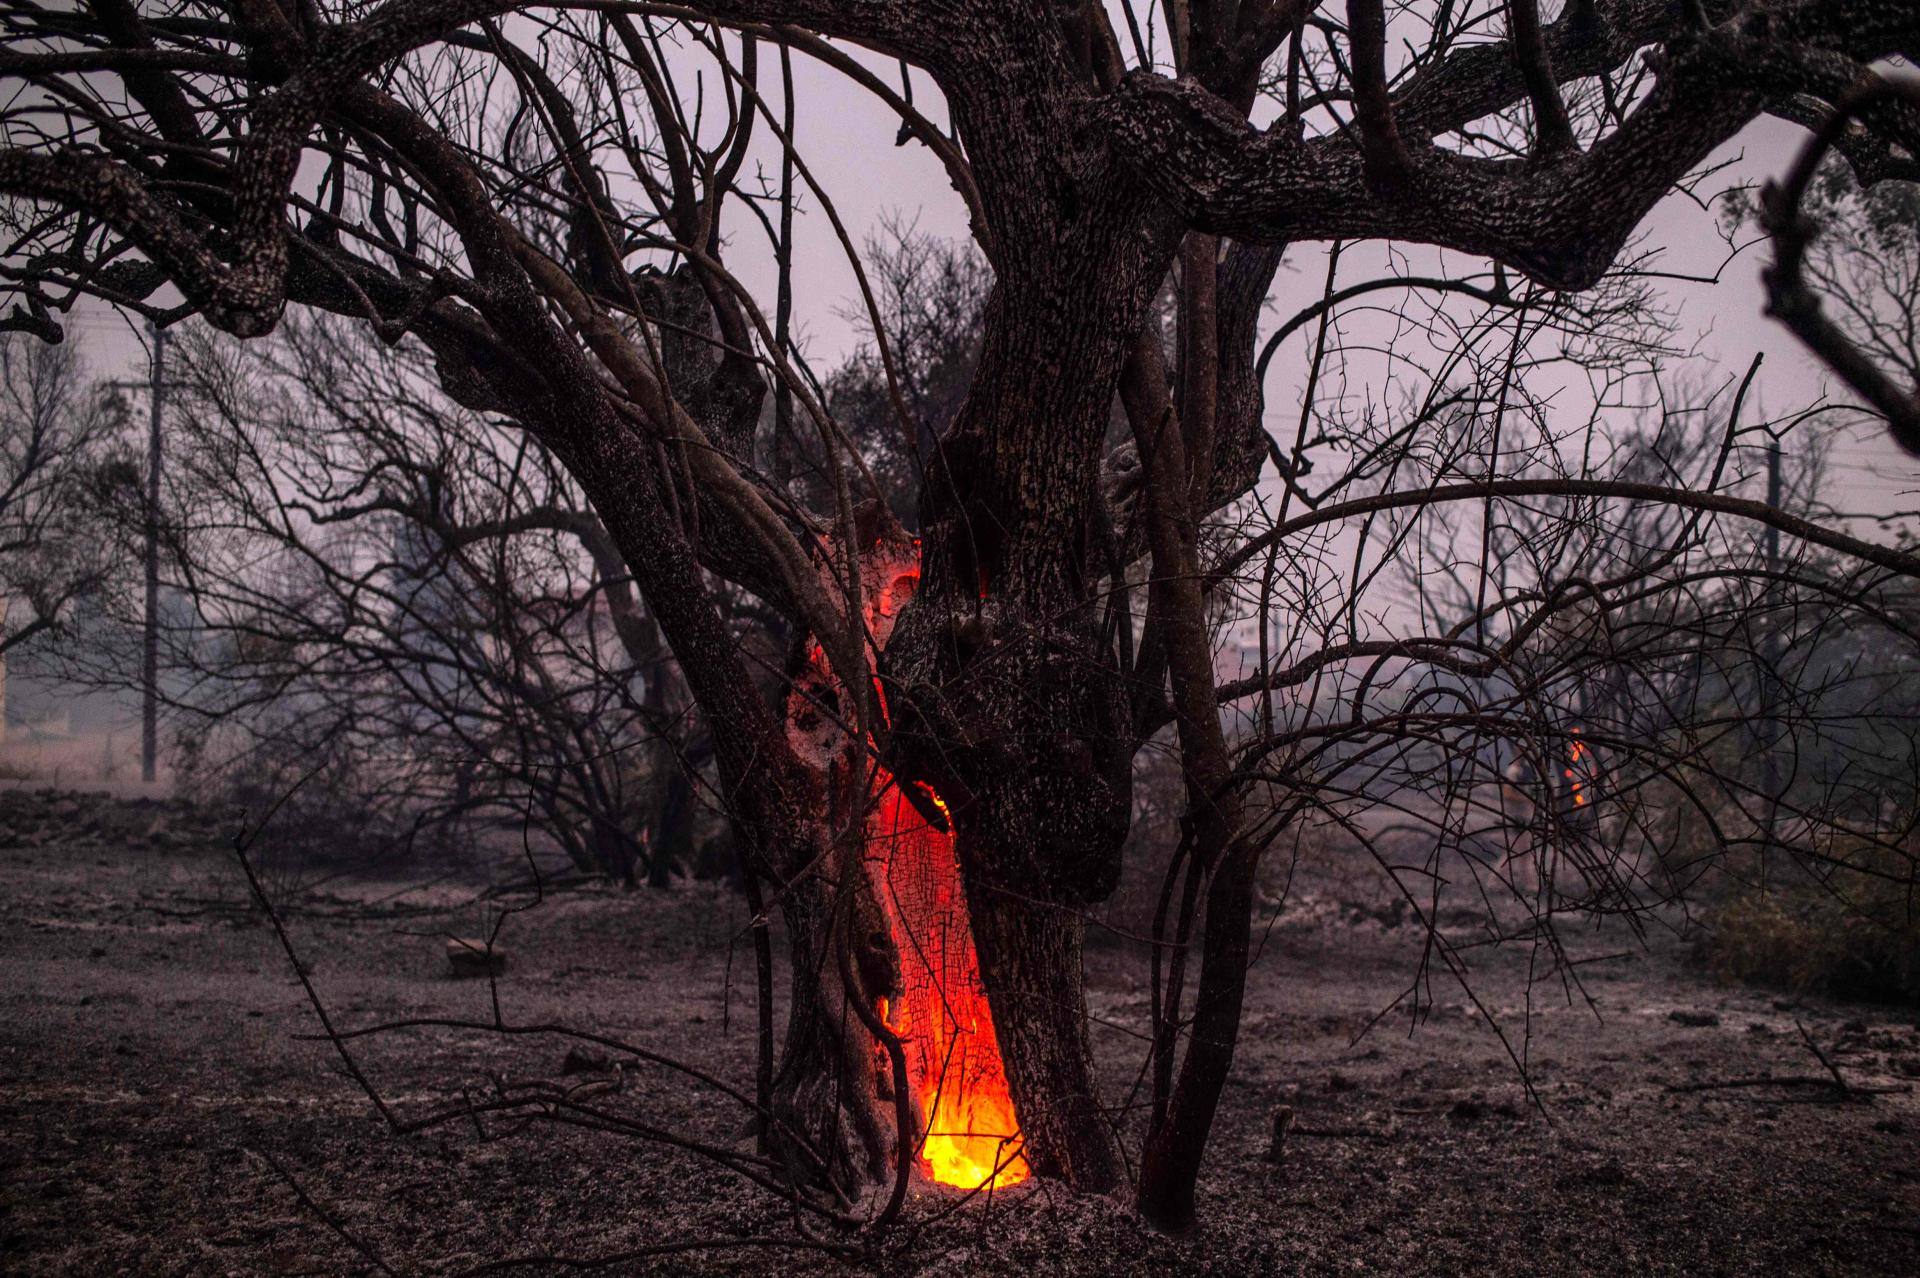 A tree burns near the village of Pfeki, on the island of Evia, August 9, 2021.